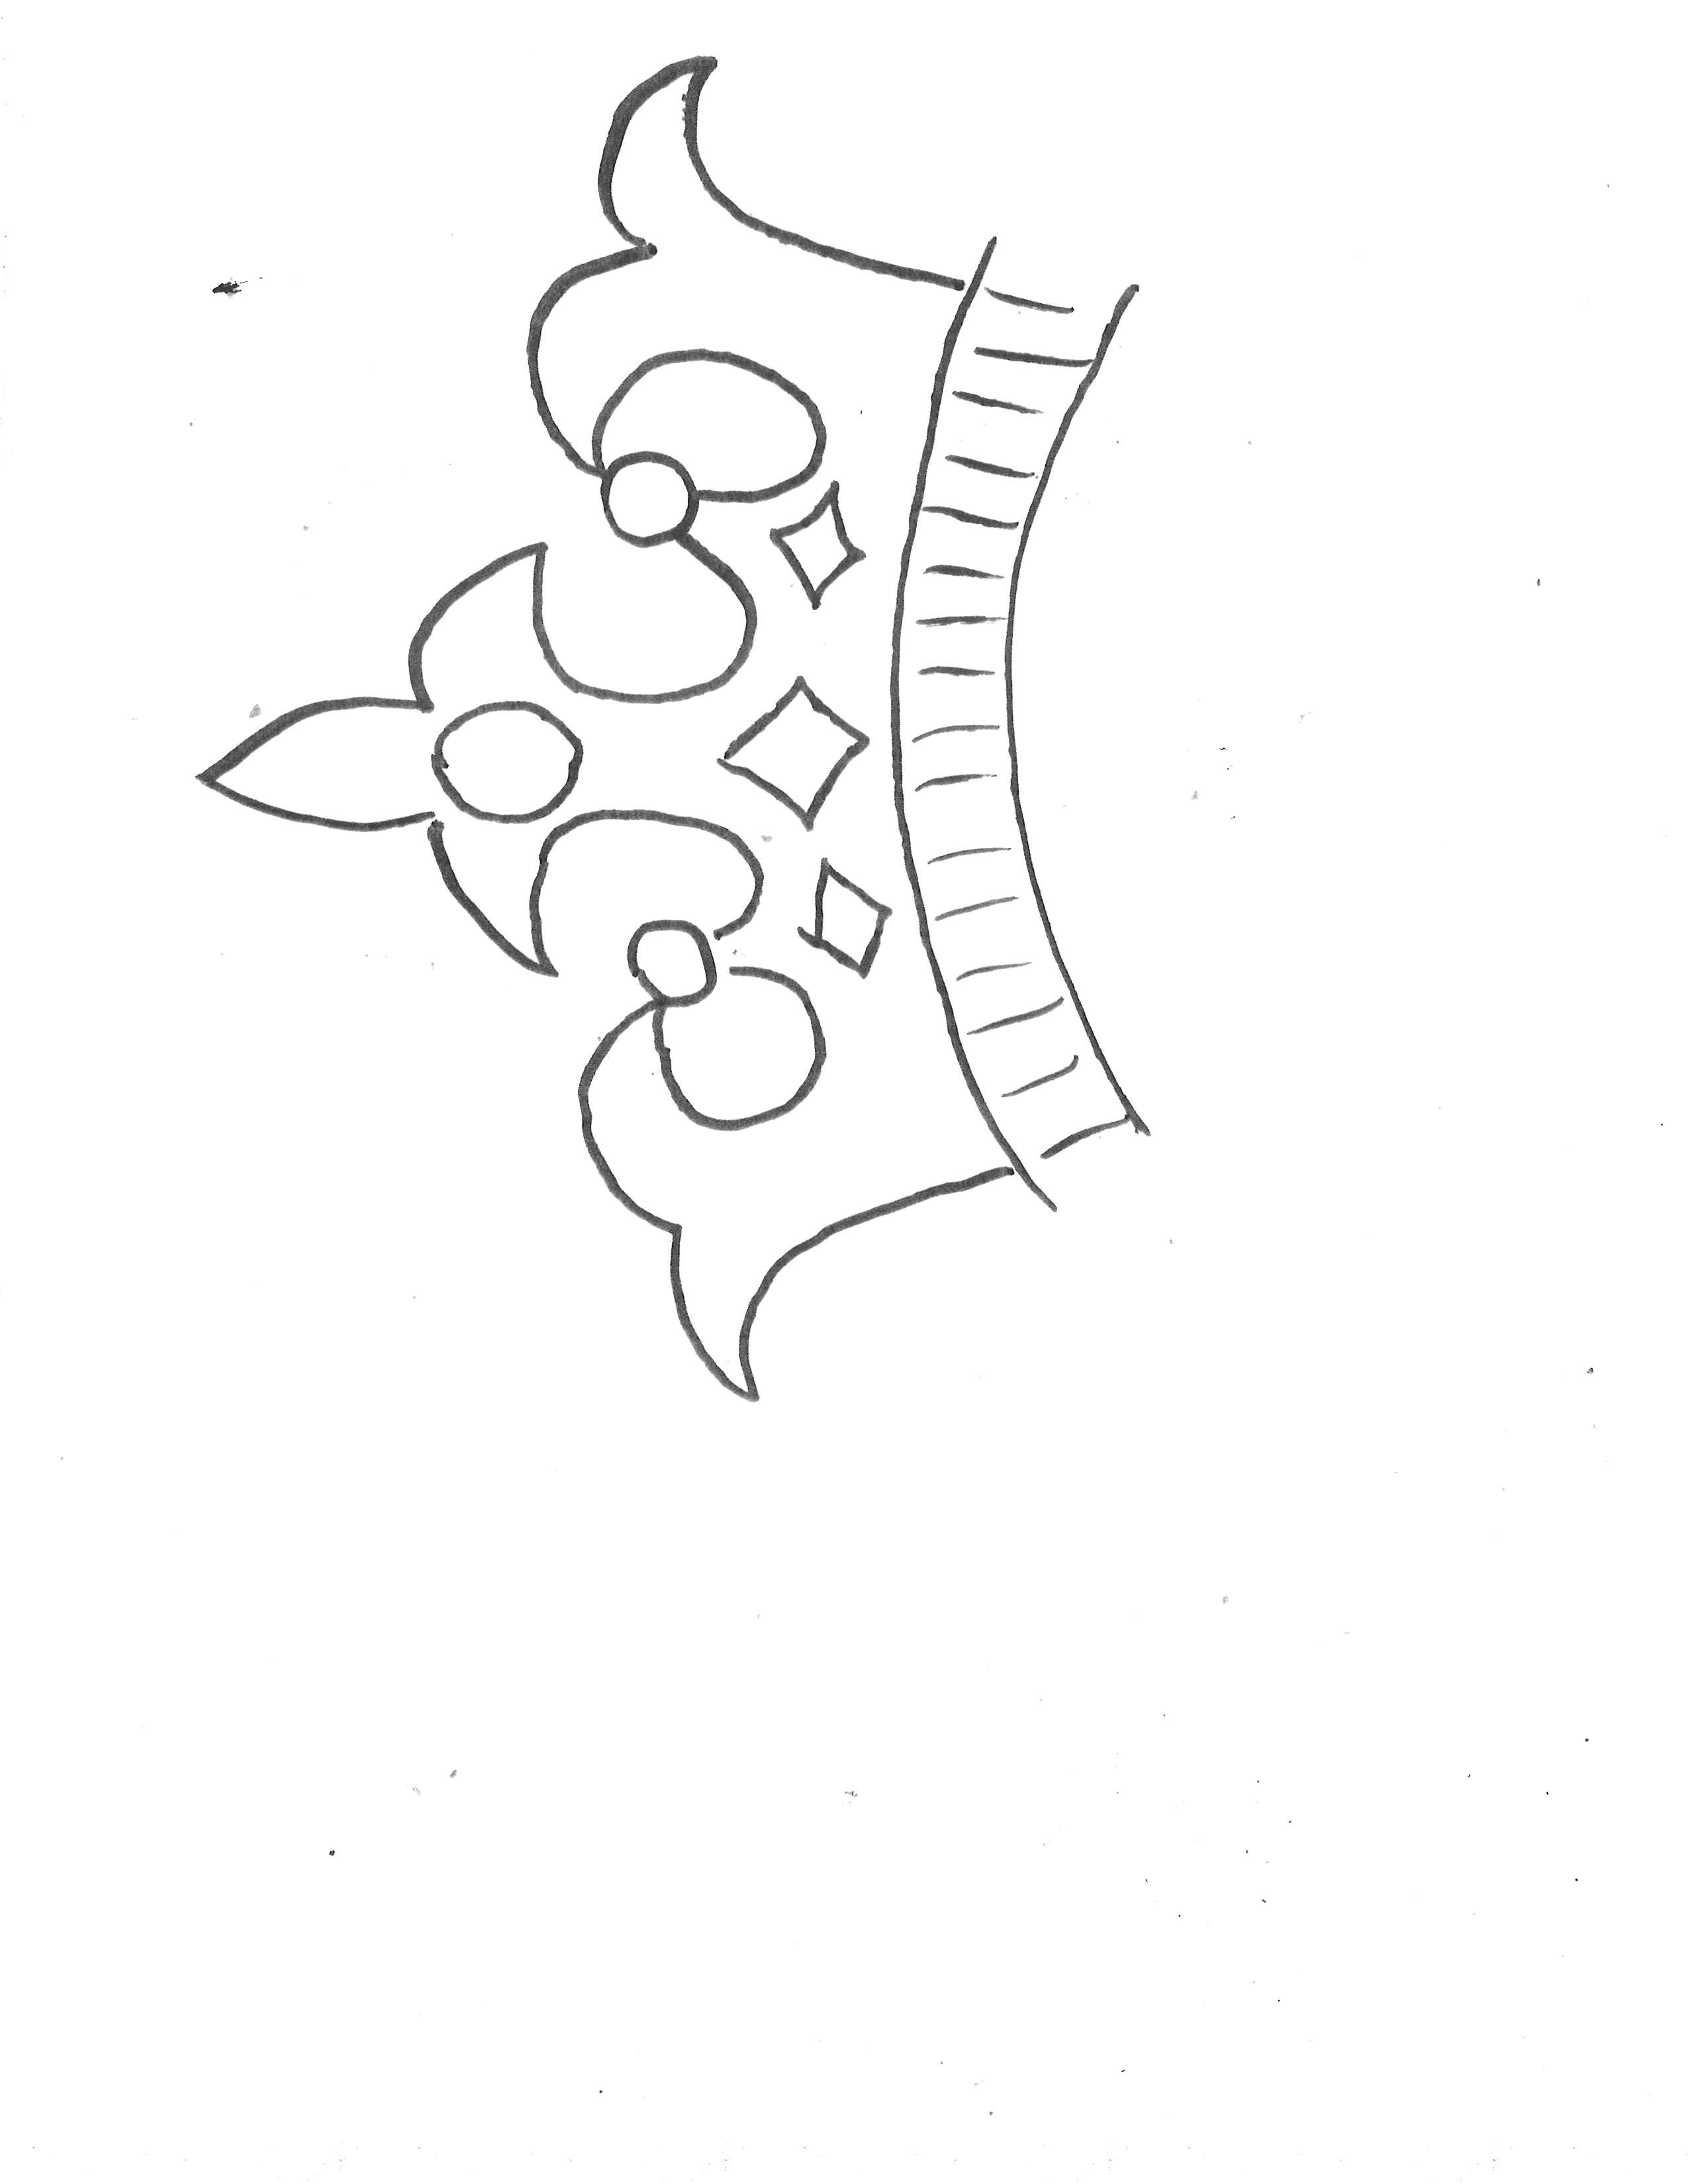 prince crown drawing at getdrawings com free for personal use